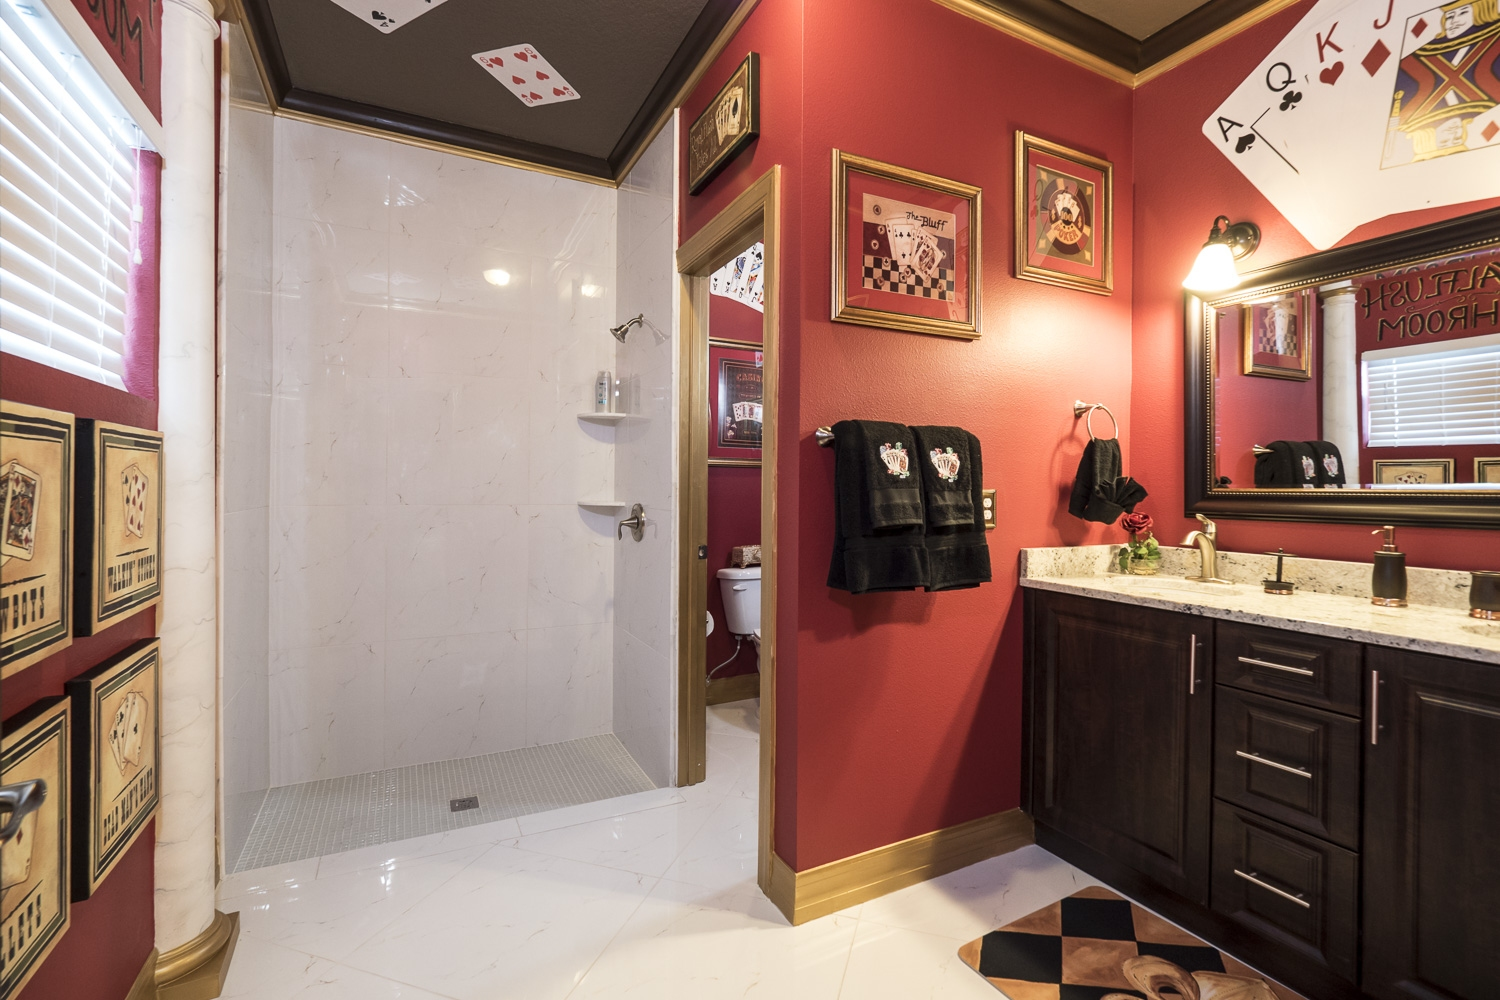 Casino Games Bedroom And Ensuite Royal Flush Bathrom At